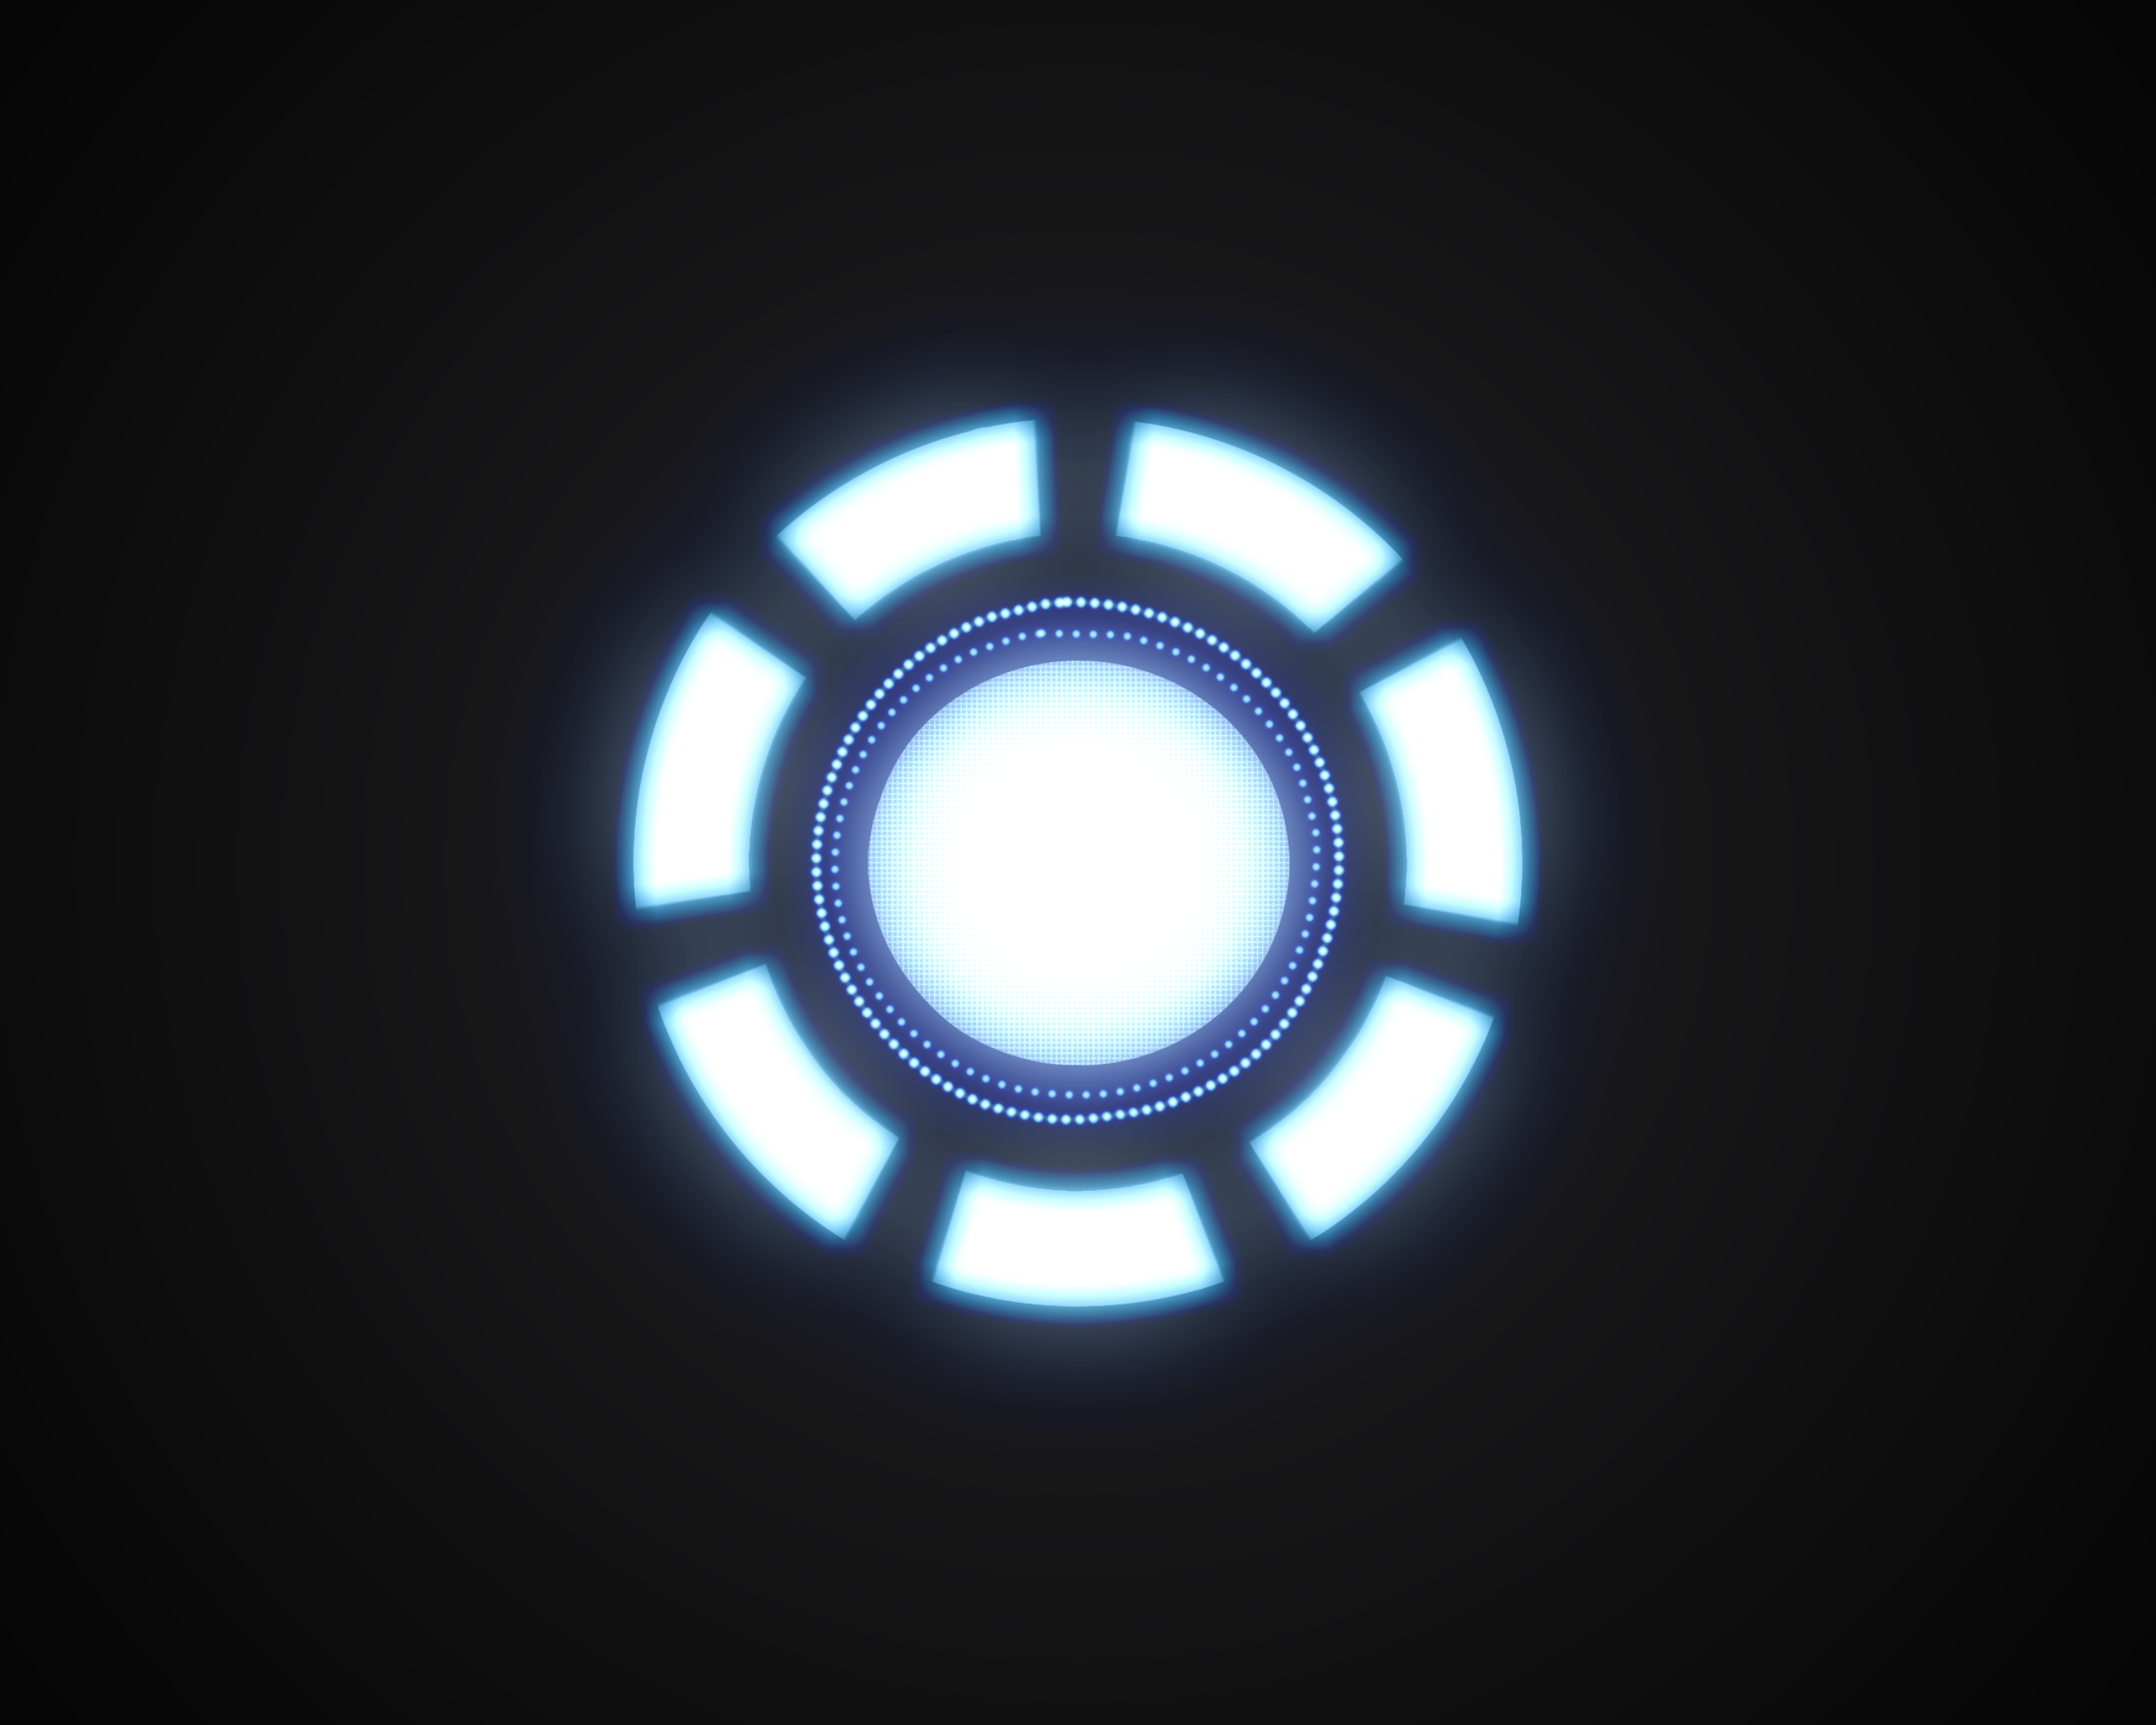 Ironman Arc Reactor Wallpaper Hd Ironman arc re 2560x2048